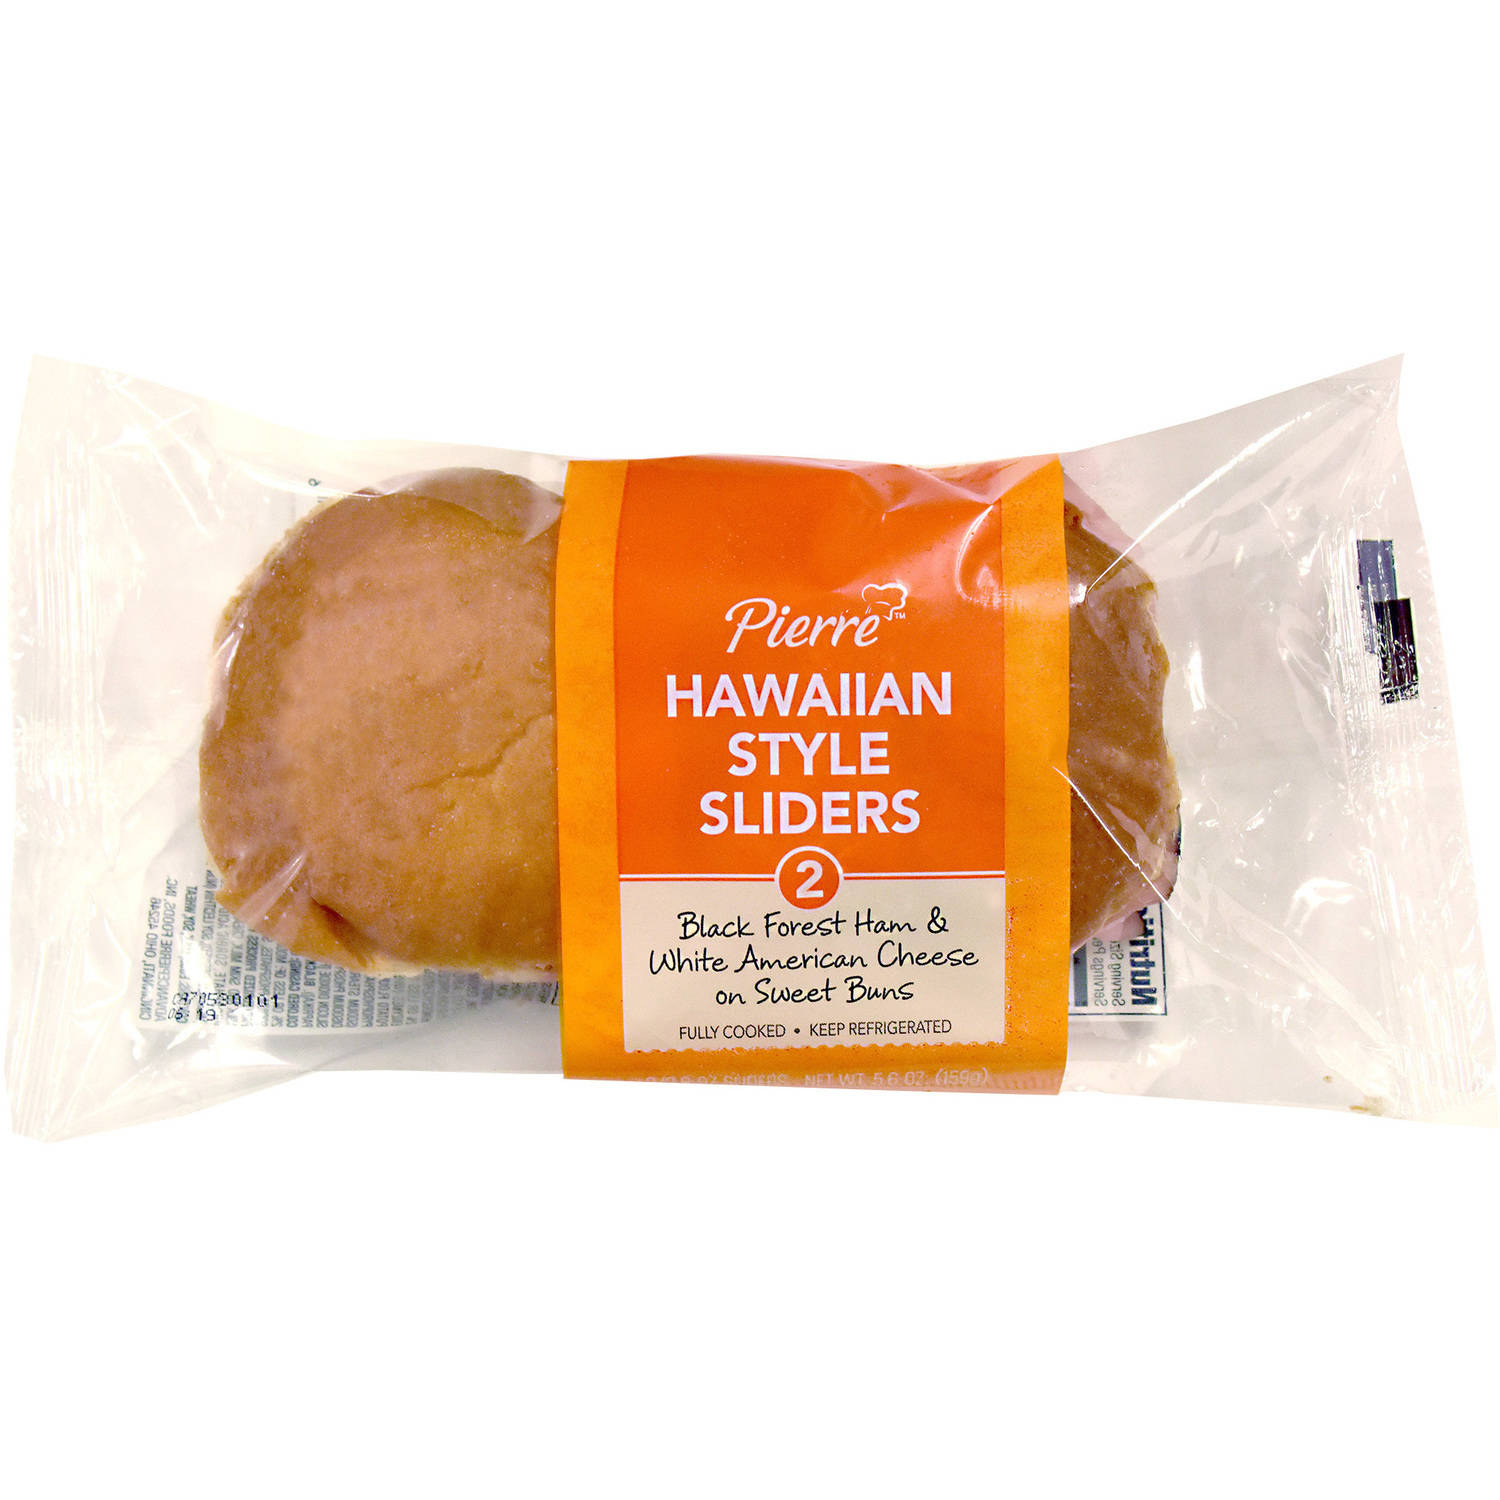 Pierre Hawaiian Style Sliders